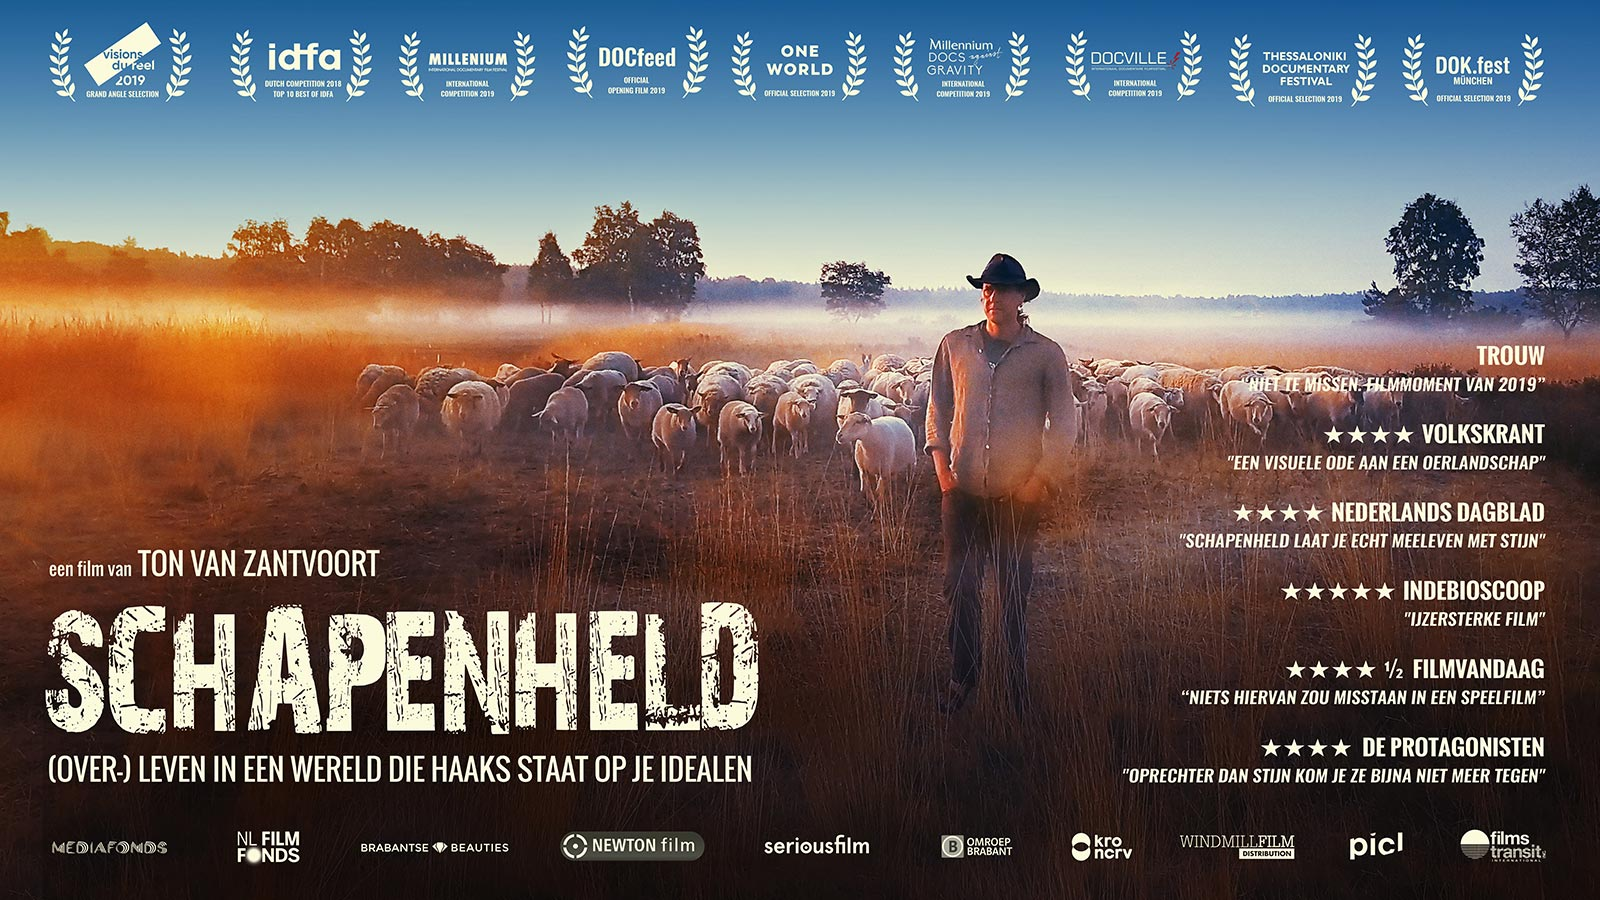 Aanrader beste film 2019 - SCHAPENHELD documentaire